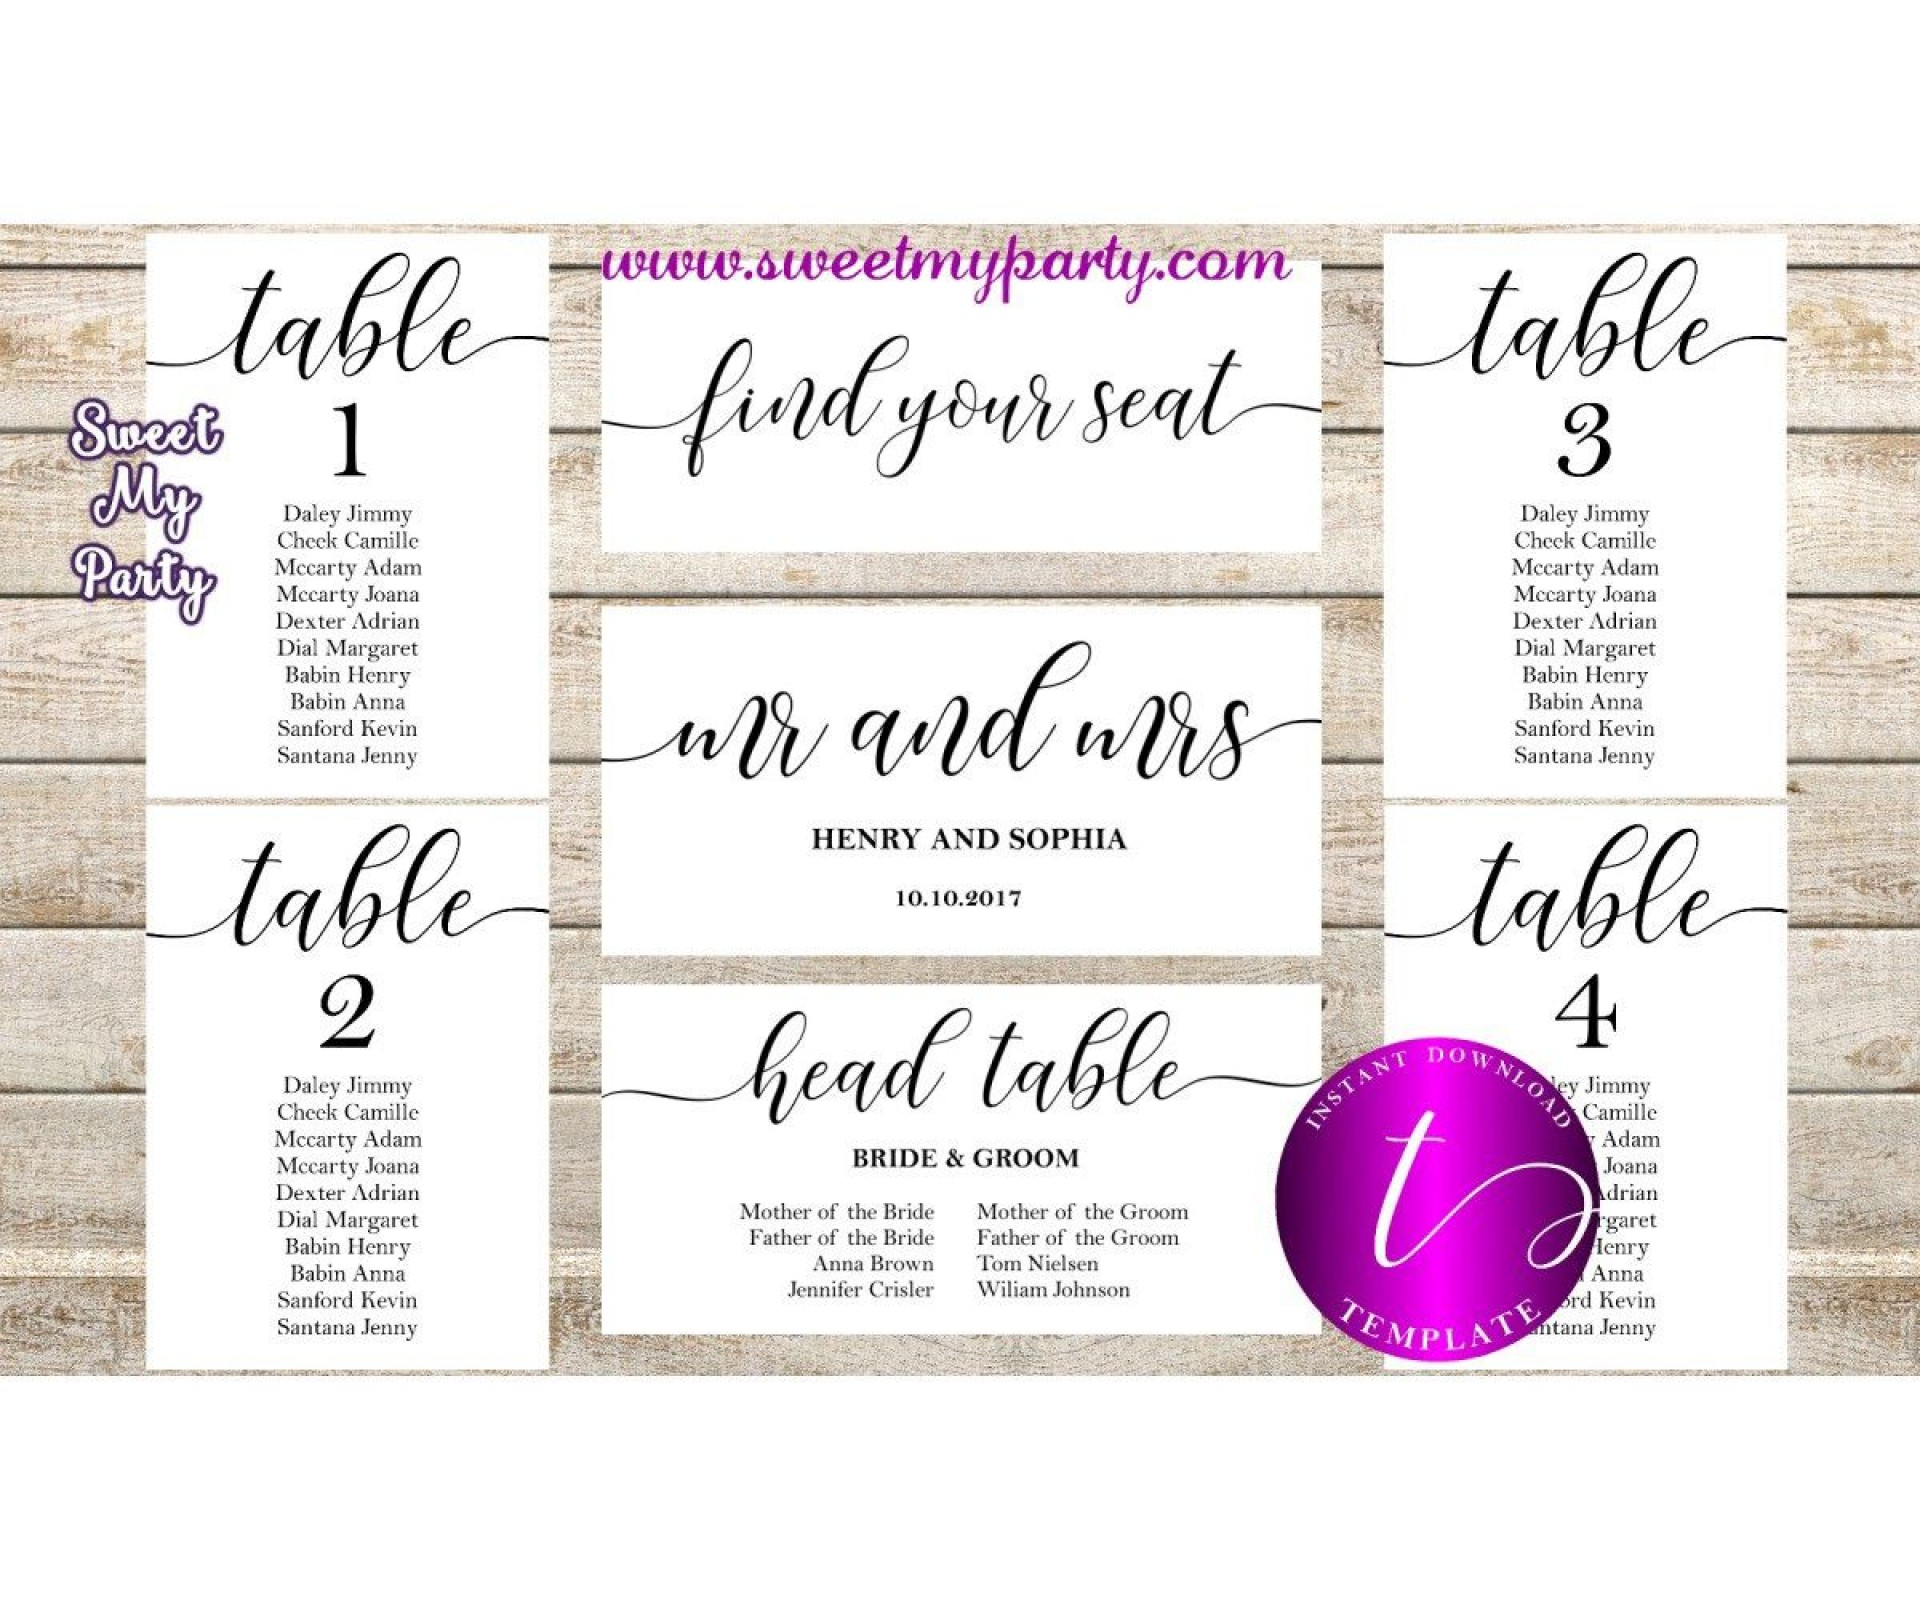 010 Amazing Wedding Seating Chart Template High Resolution  Templates Plan Excel Word Microsoft1920